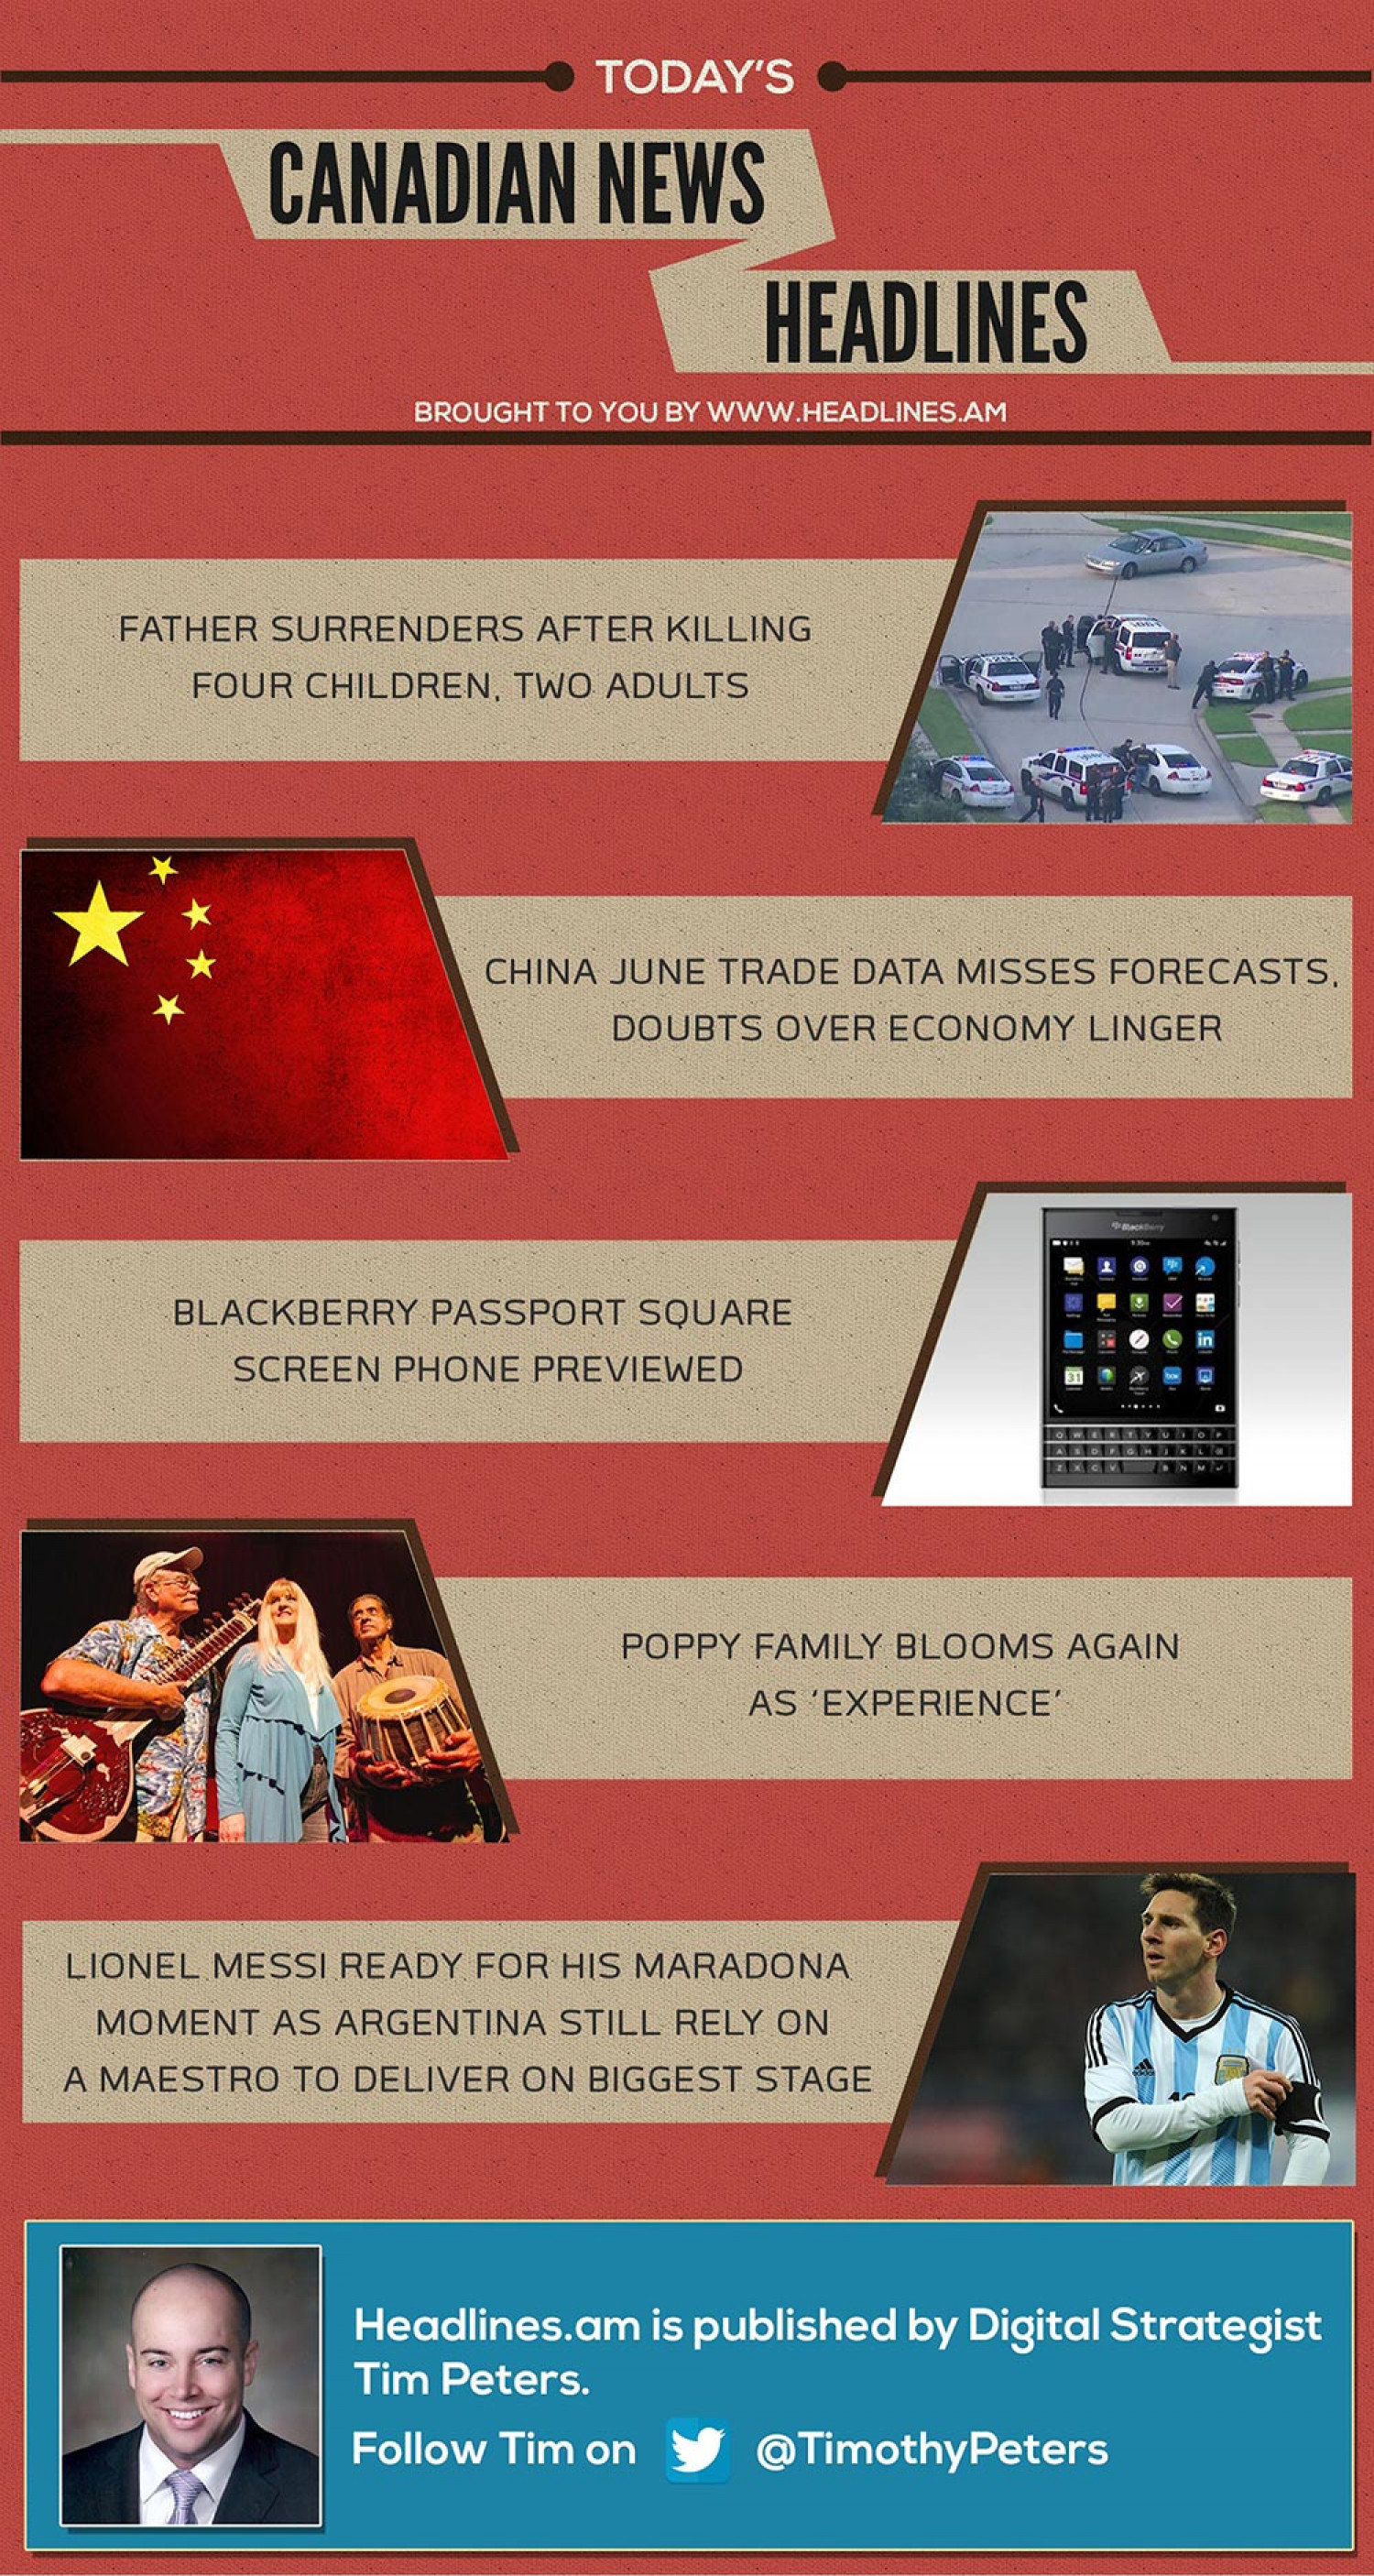 CANADIAN NEWS HEADLINES - July 10, 2014 Infographic